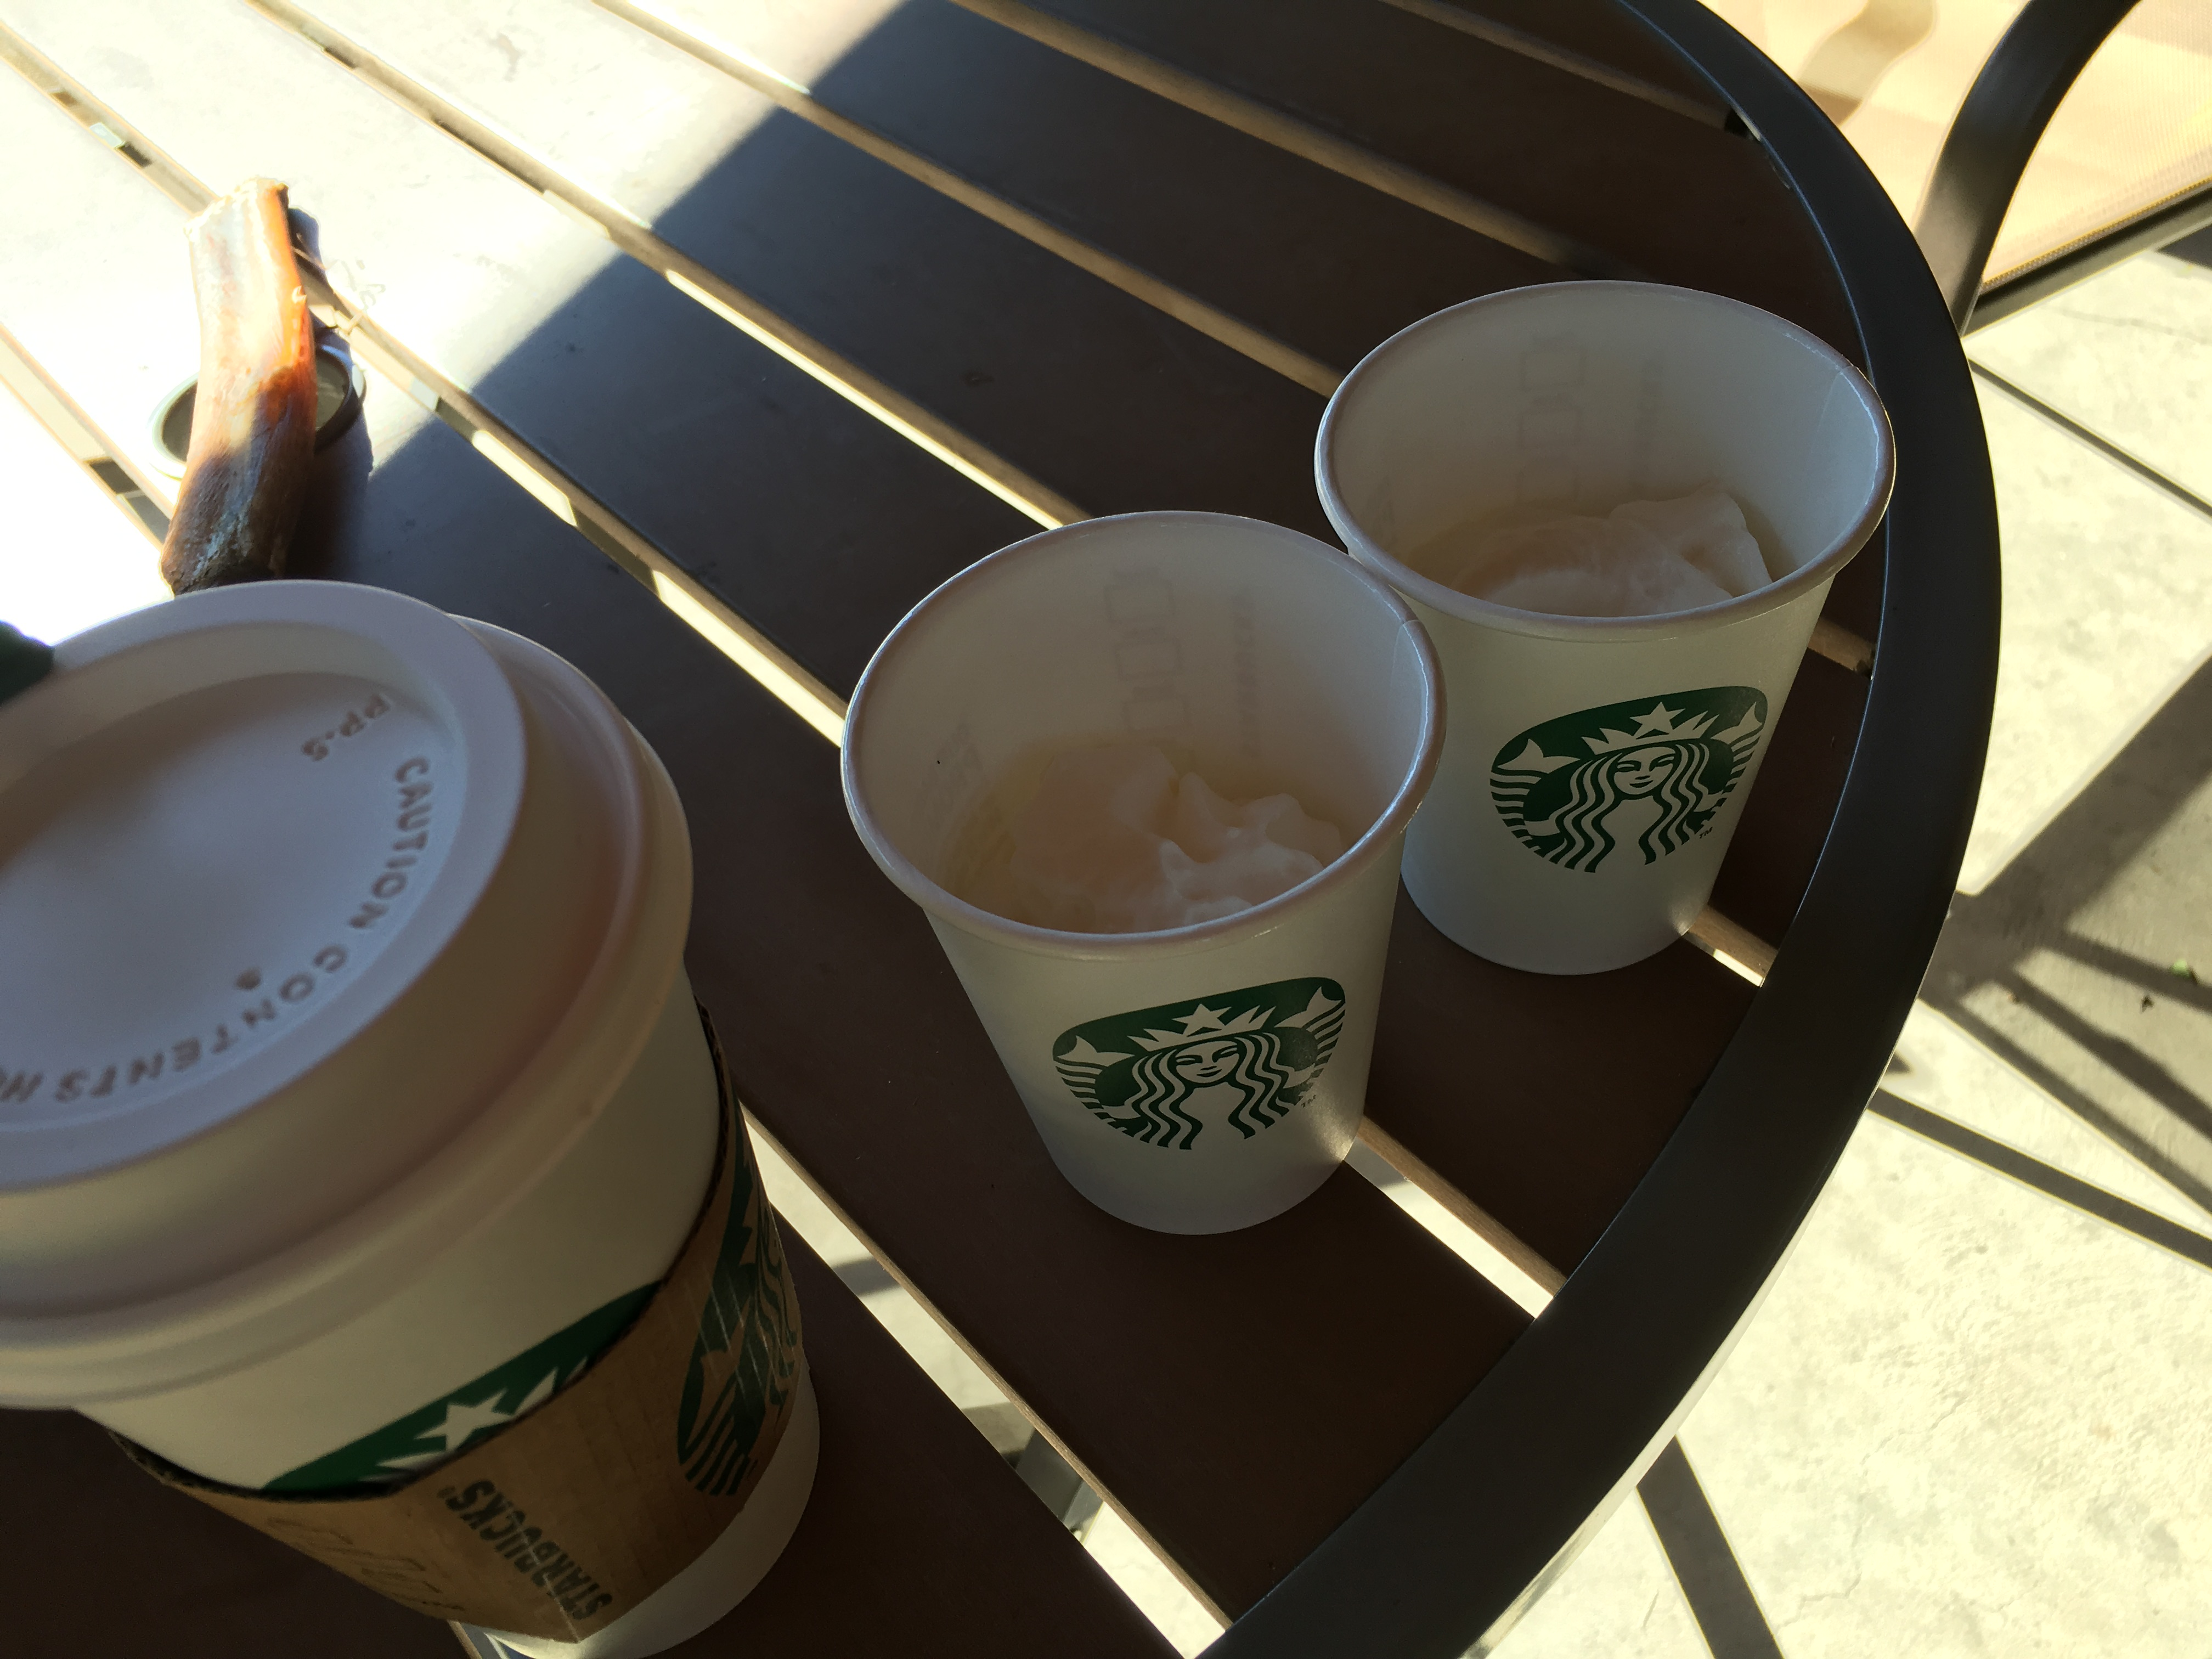 The puppaccino: a small cup of whipped cream for your pooch, courtesy of Starbucks.